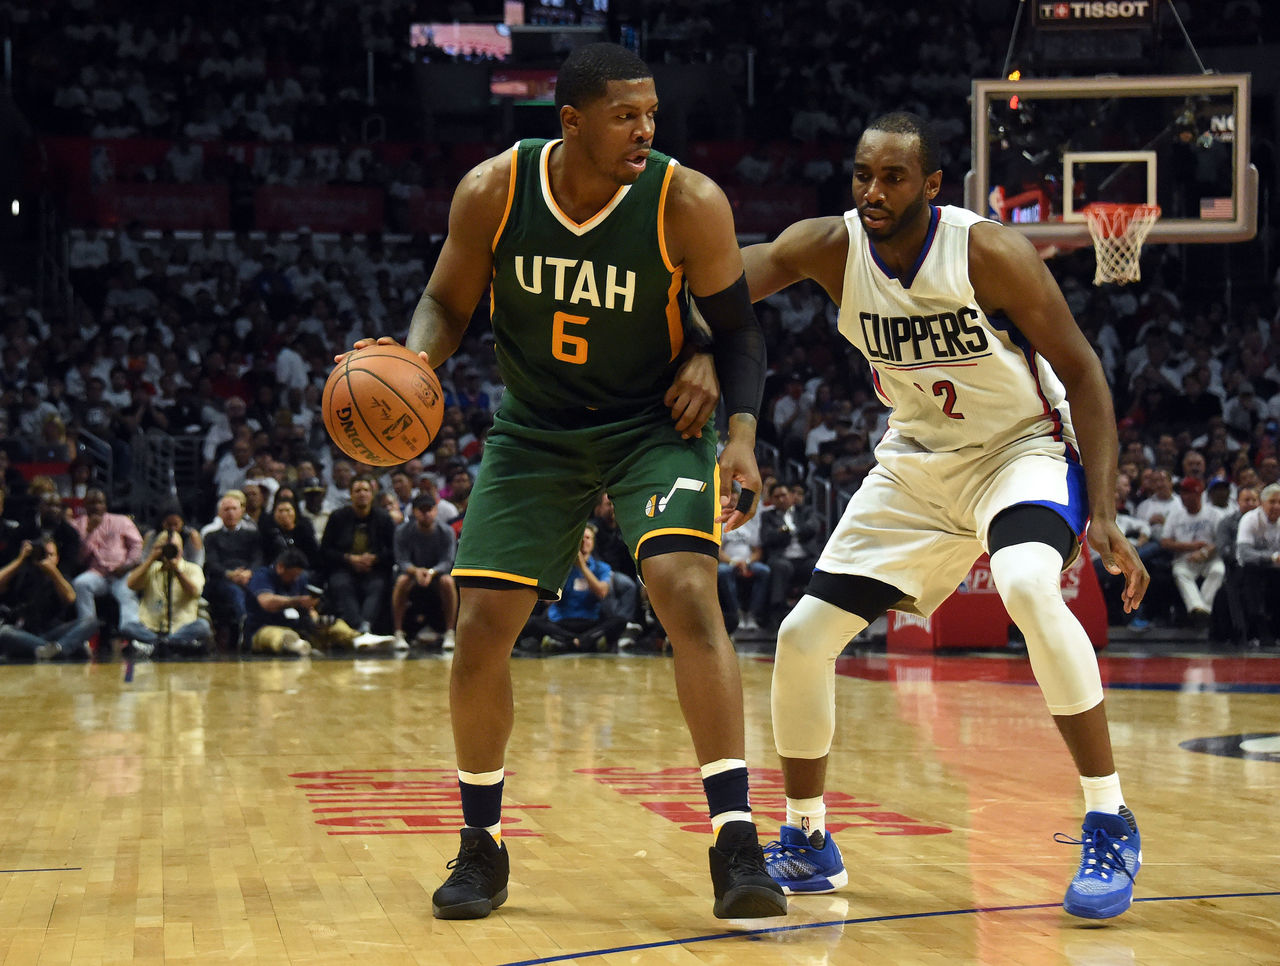 Cropped 2017 04 26t043252z 260529797 nocid rtrmadp 3 nba playoffs utah jazz at los angeles clippers